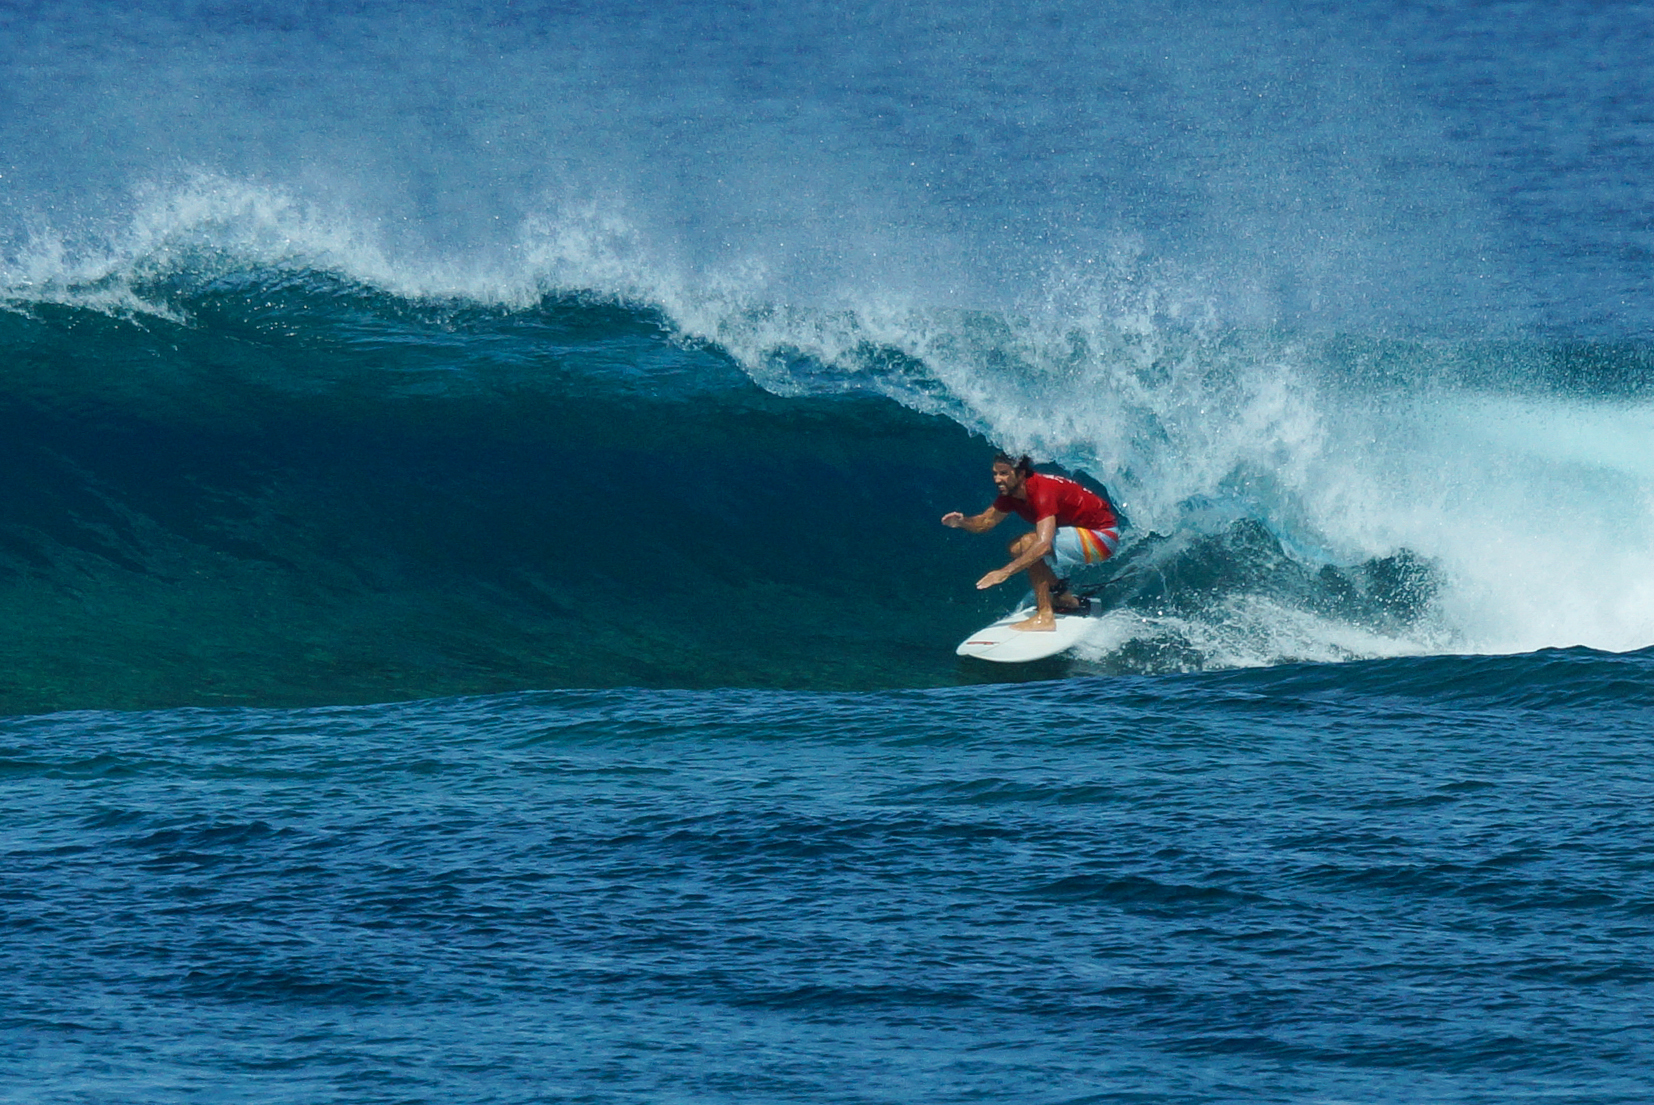 Surfer Bryan Pohlman in the Maldives